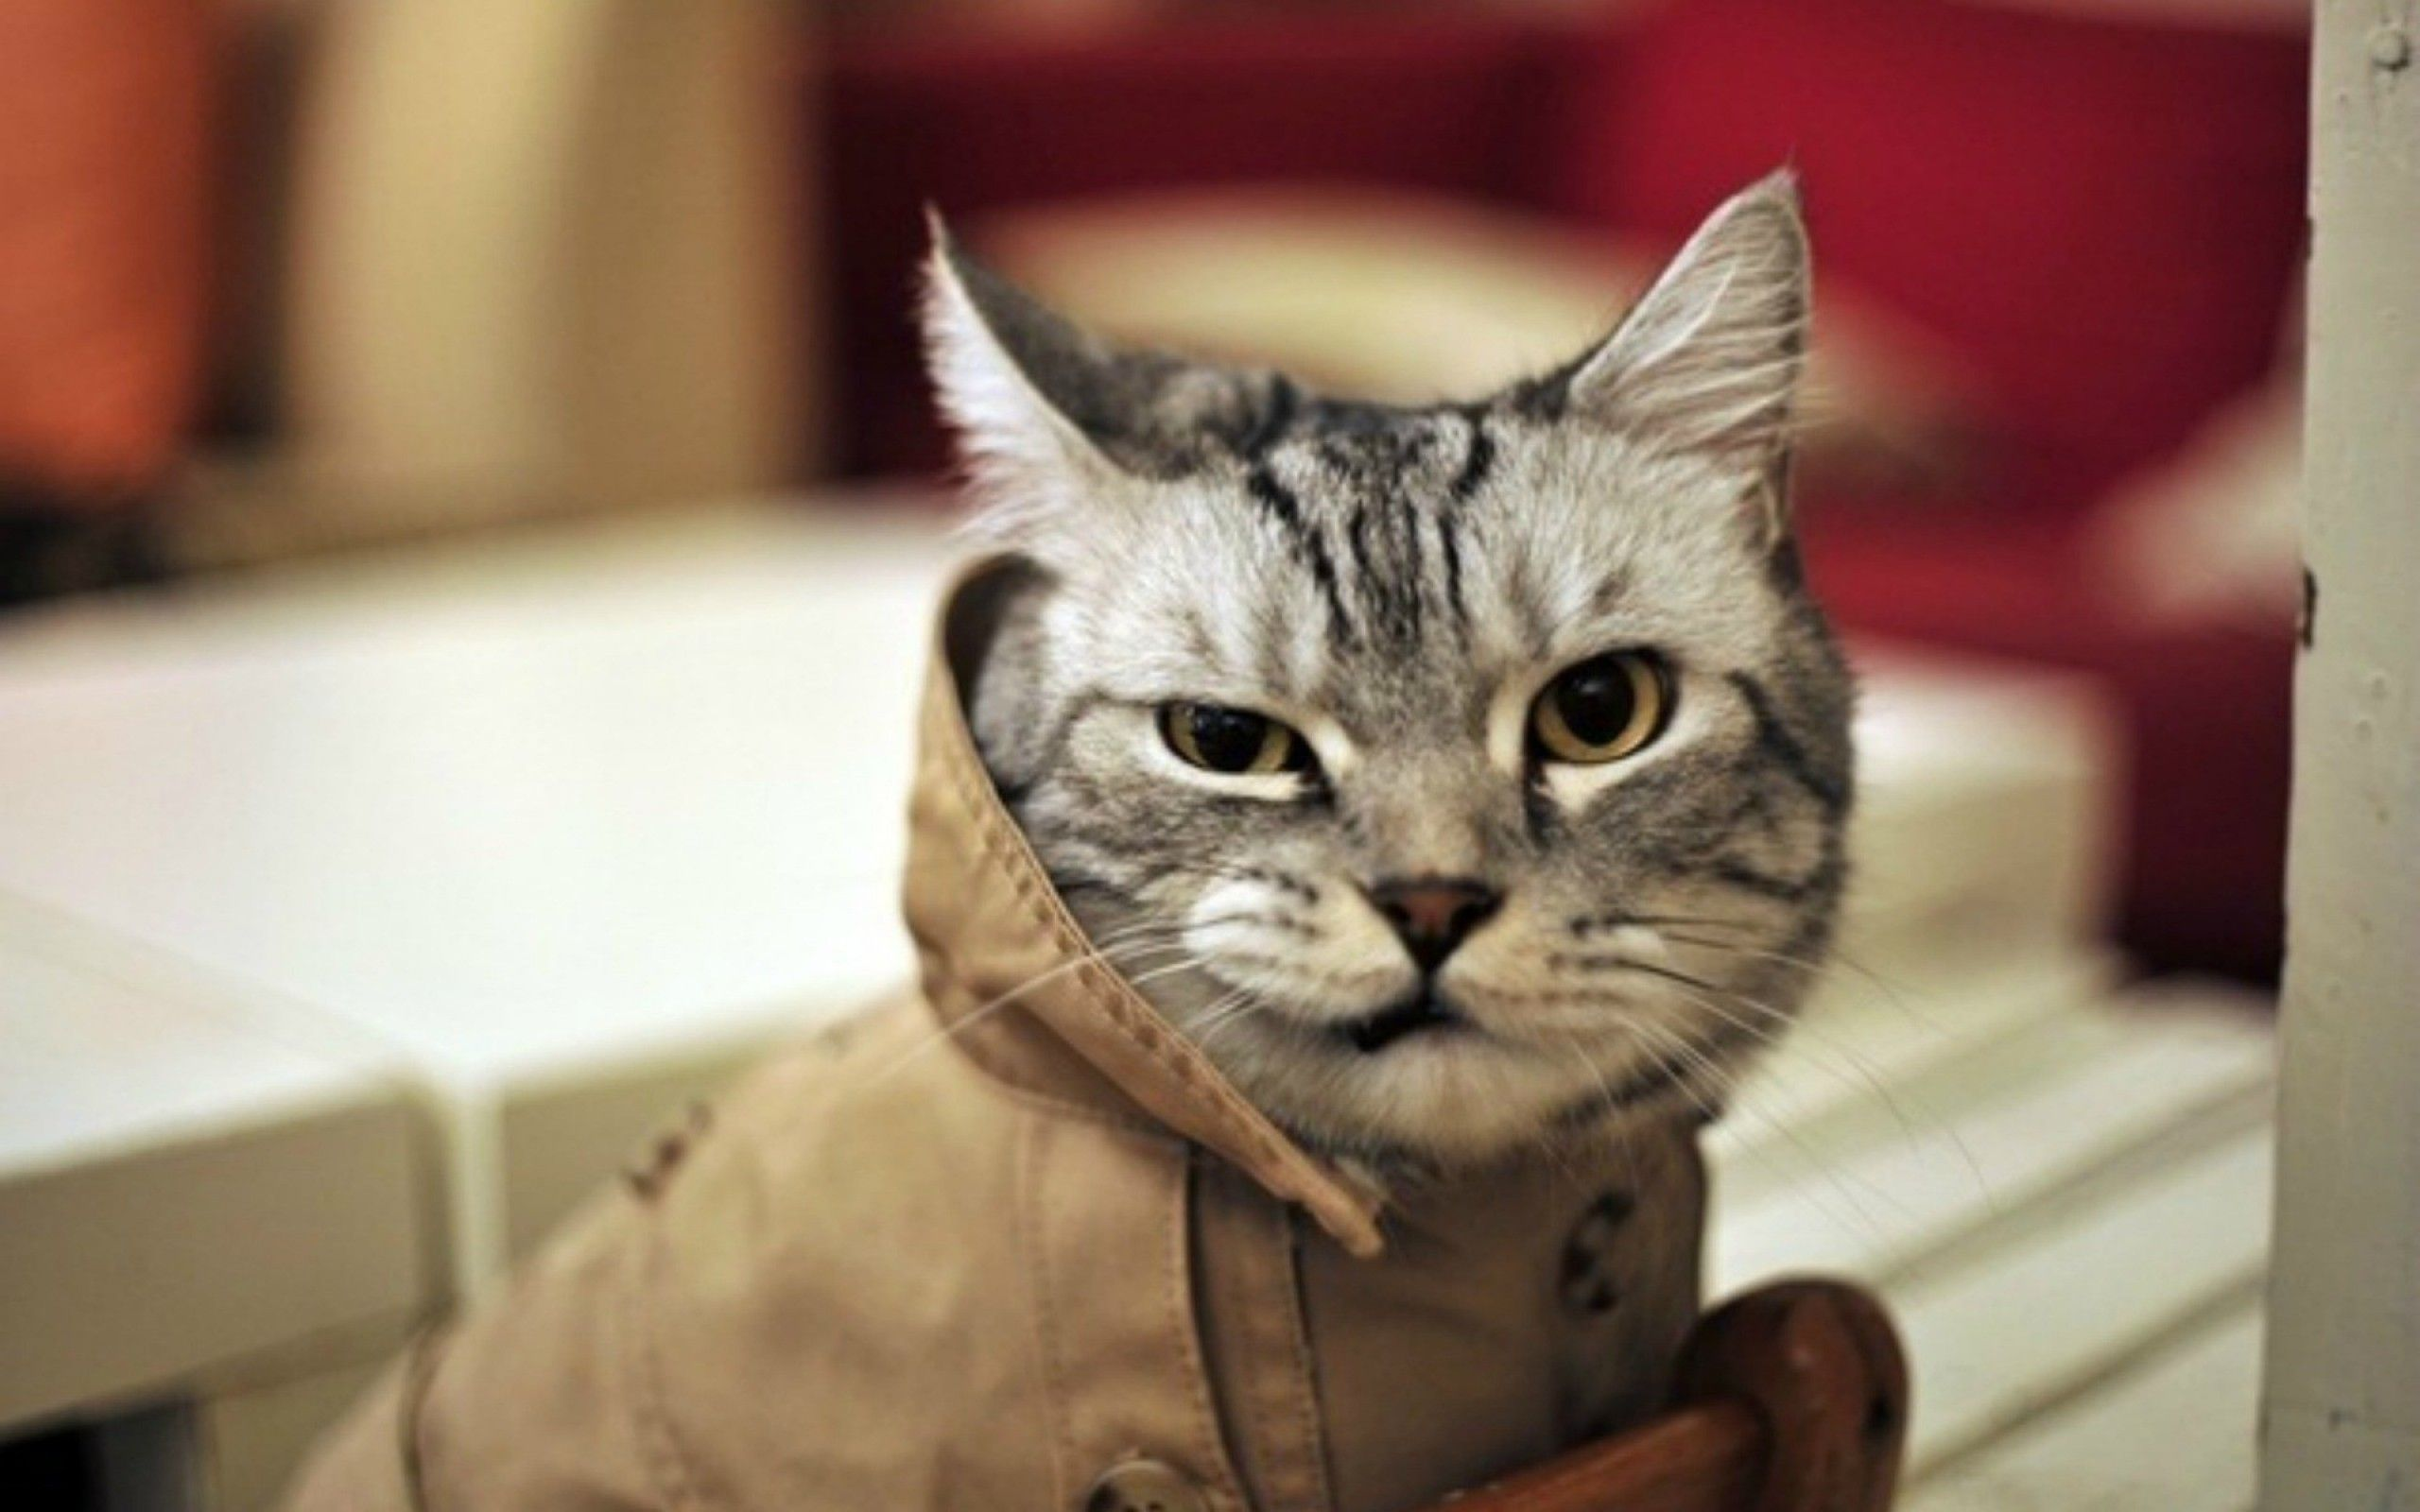 funny cat wallpapers : find best latest funny cat wallpapers for